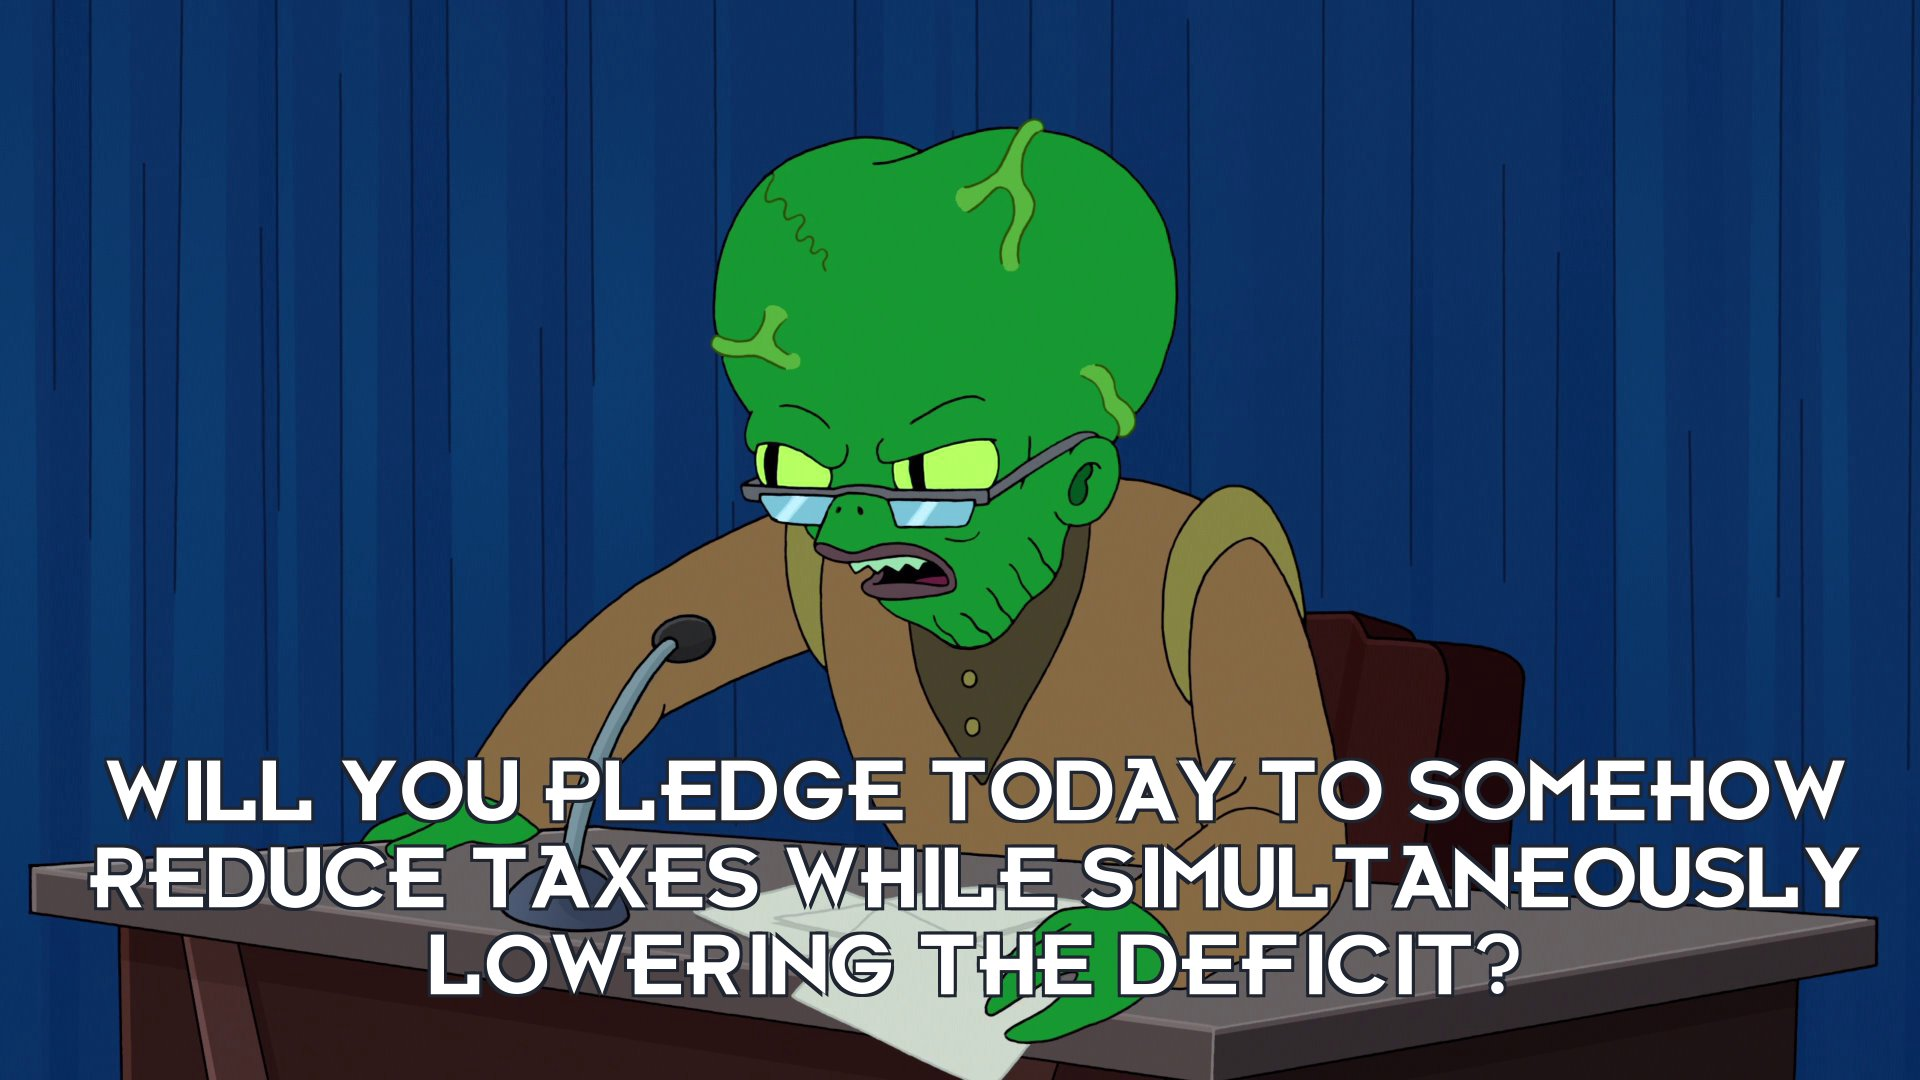 Morbo: Will you pledge today to somehow reduce taxes while simultaneously lowering the deficit?